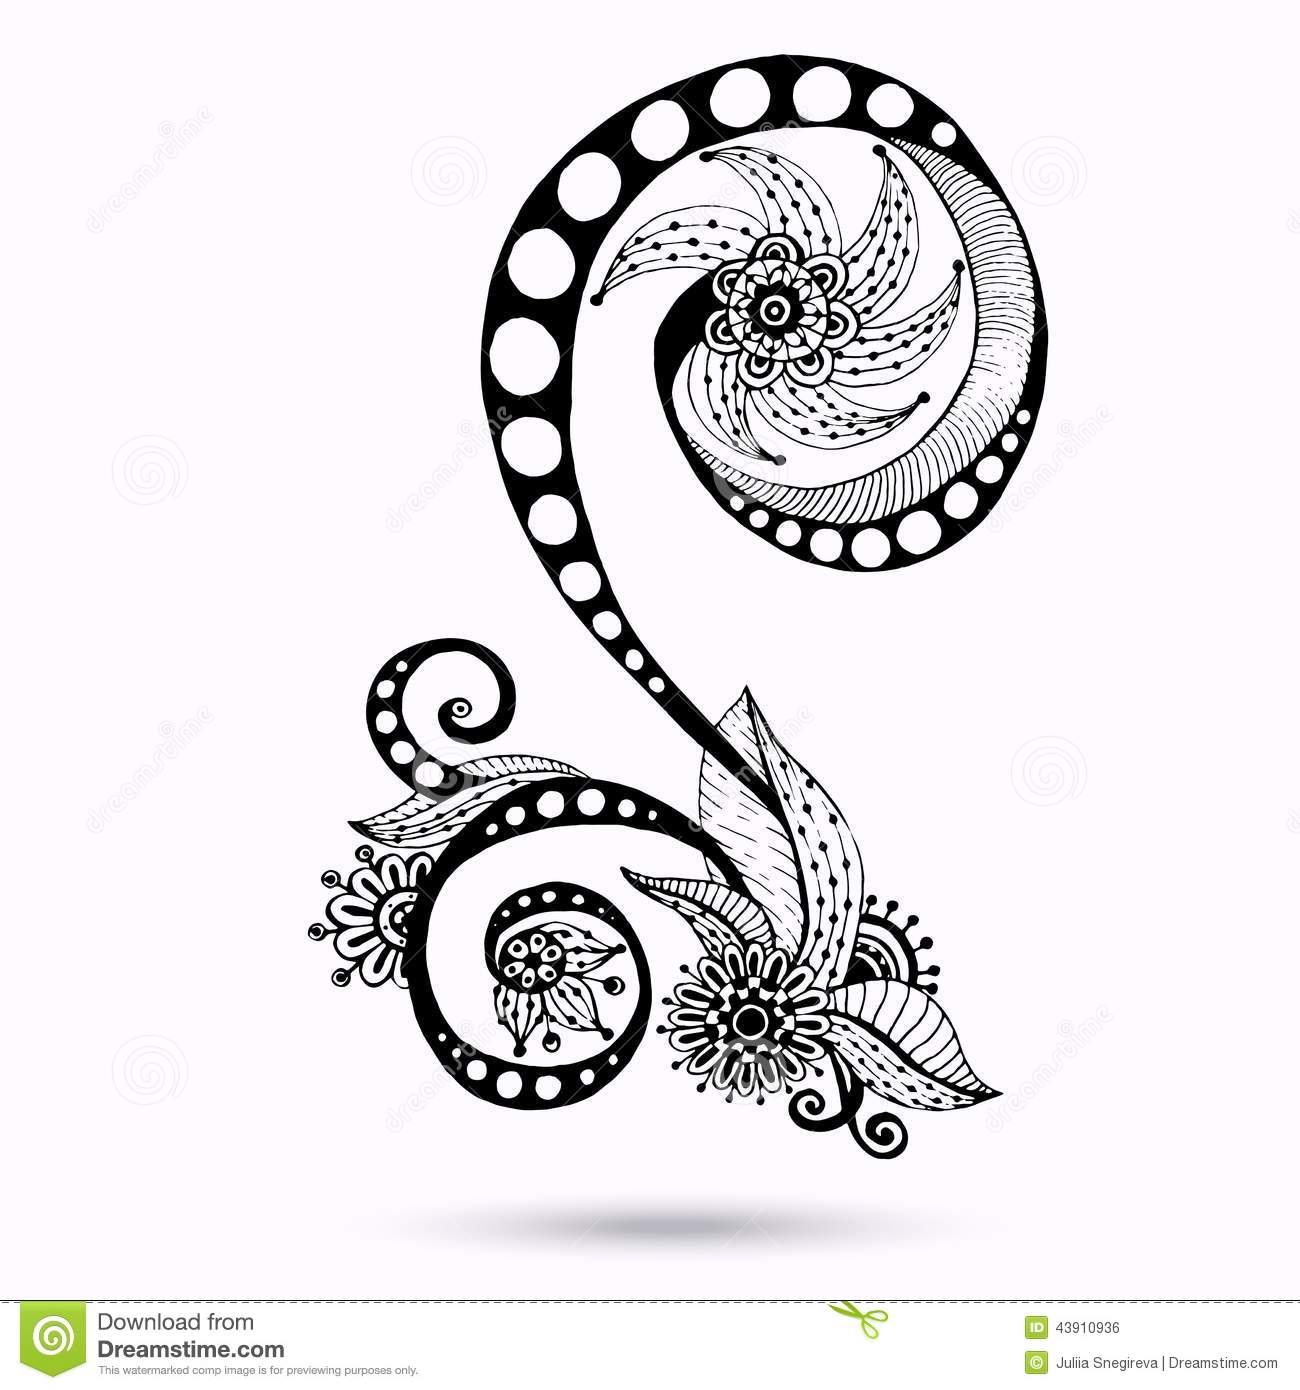 Henna Paisley Mehndi Doodles Design Element Stock Vector